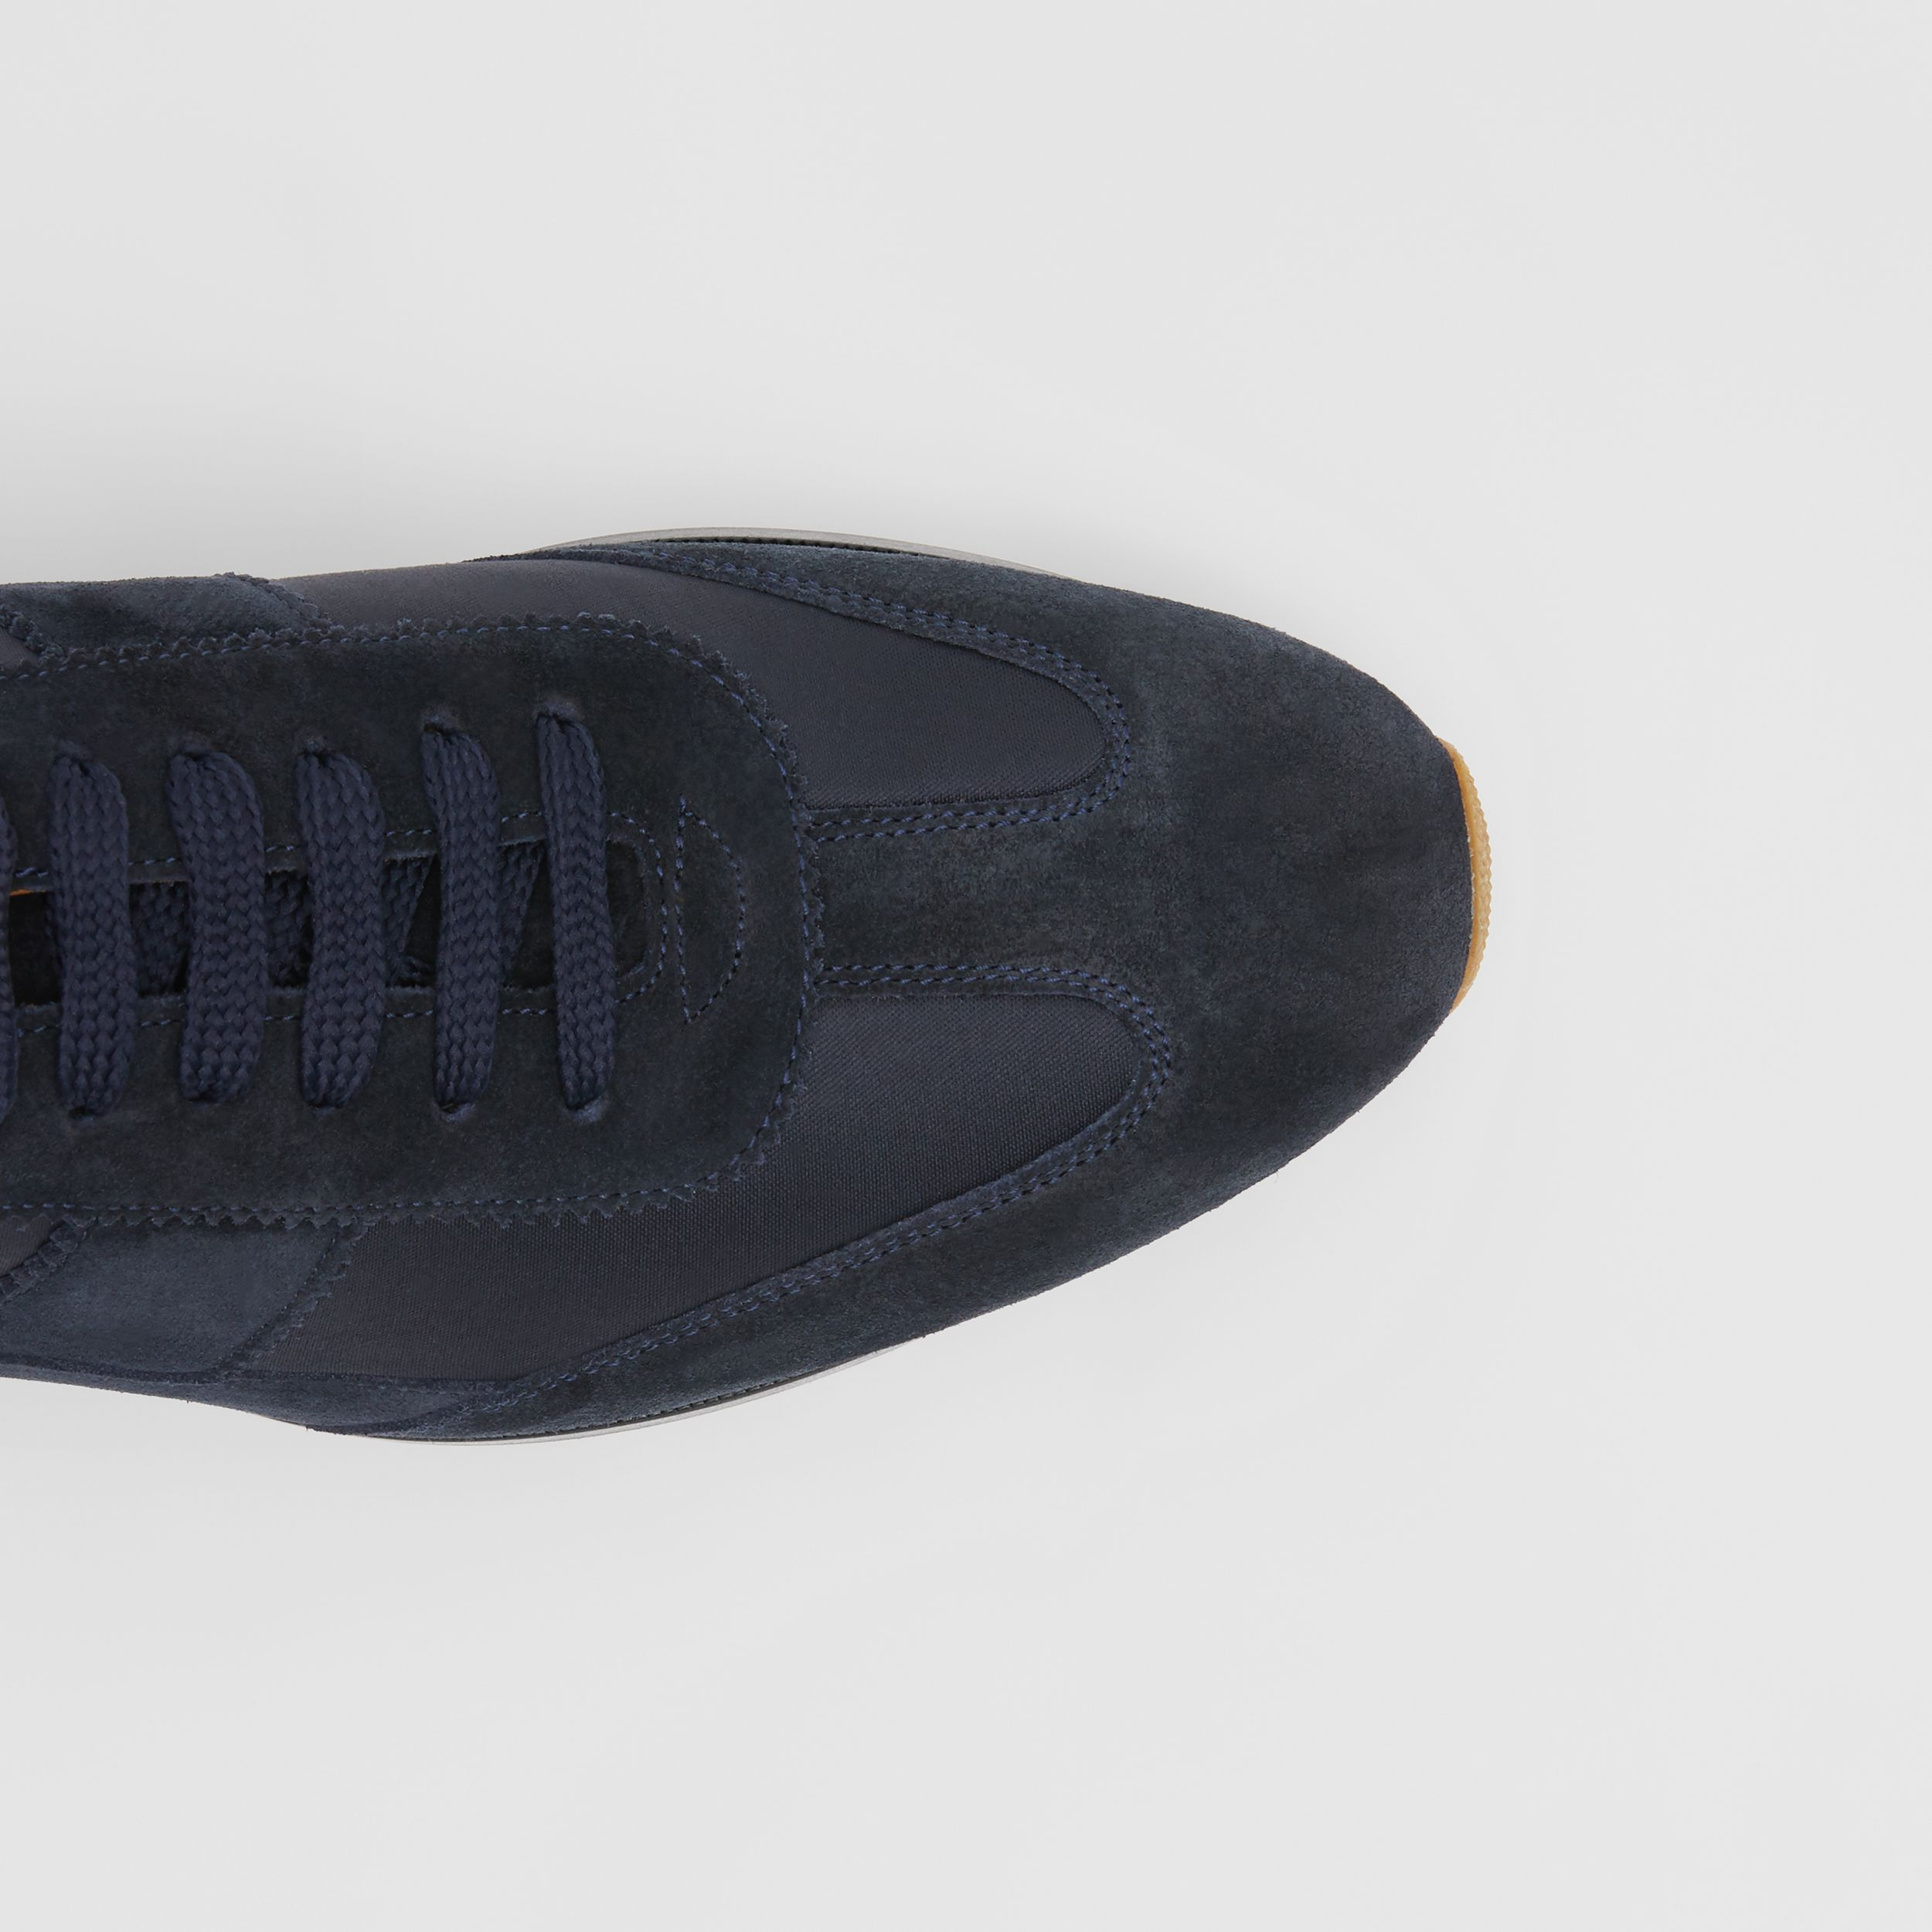 Neoprene Panel Suede Lace-up Shoes in Navy | Burberry - 2